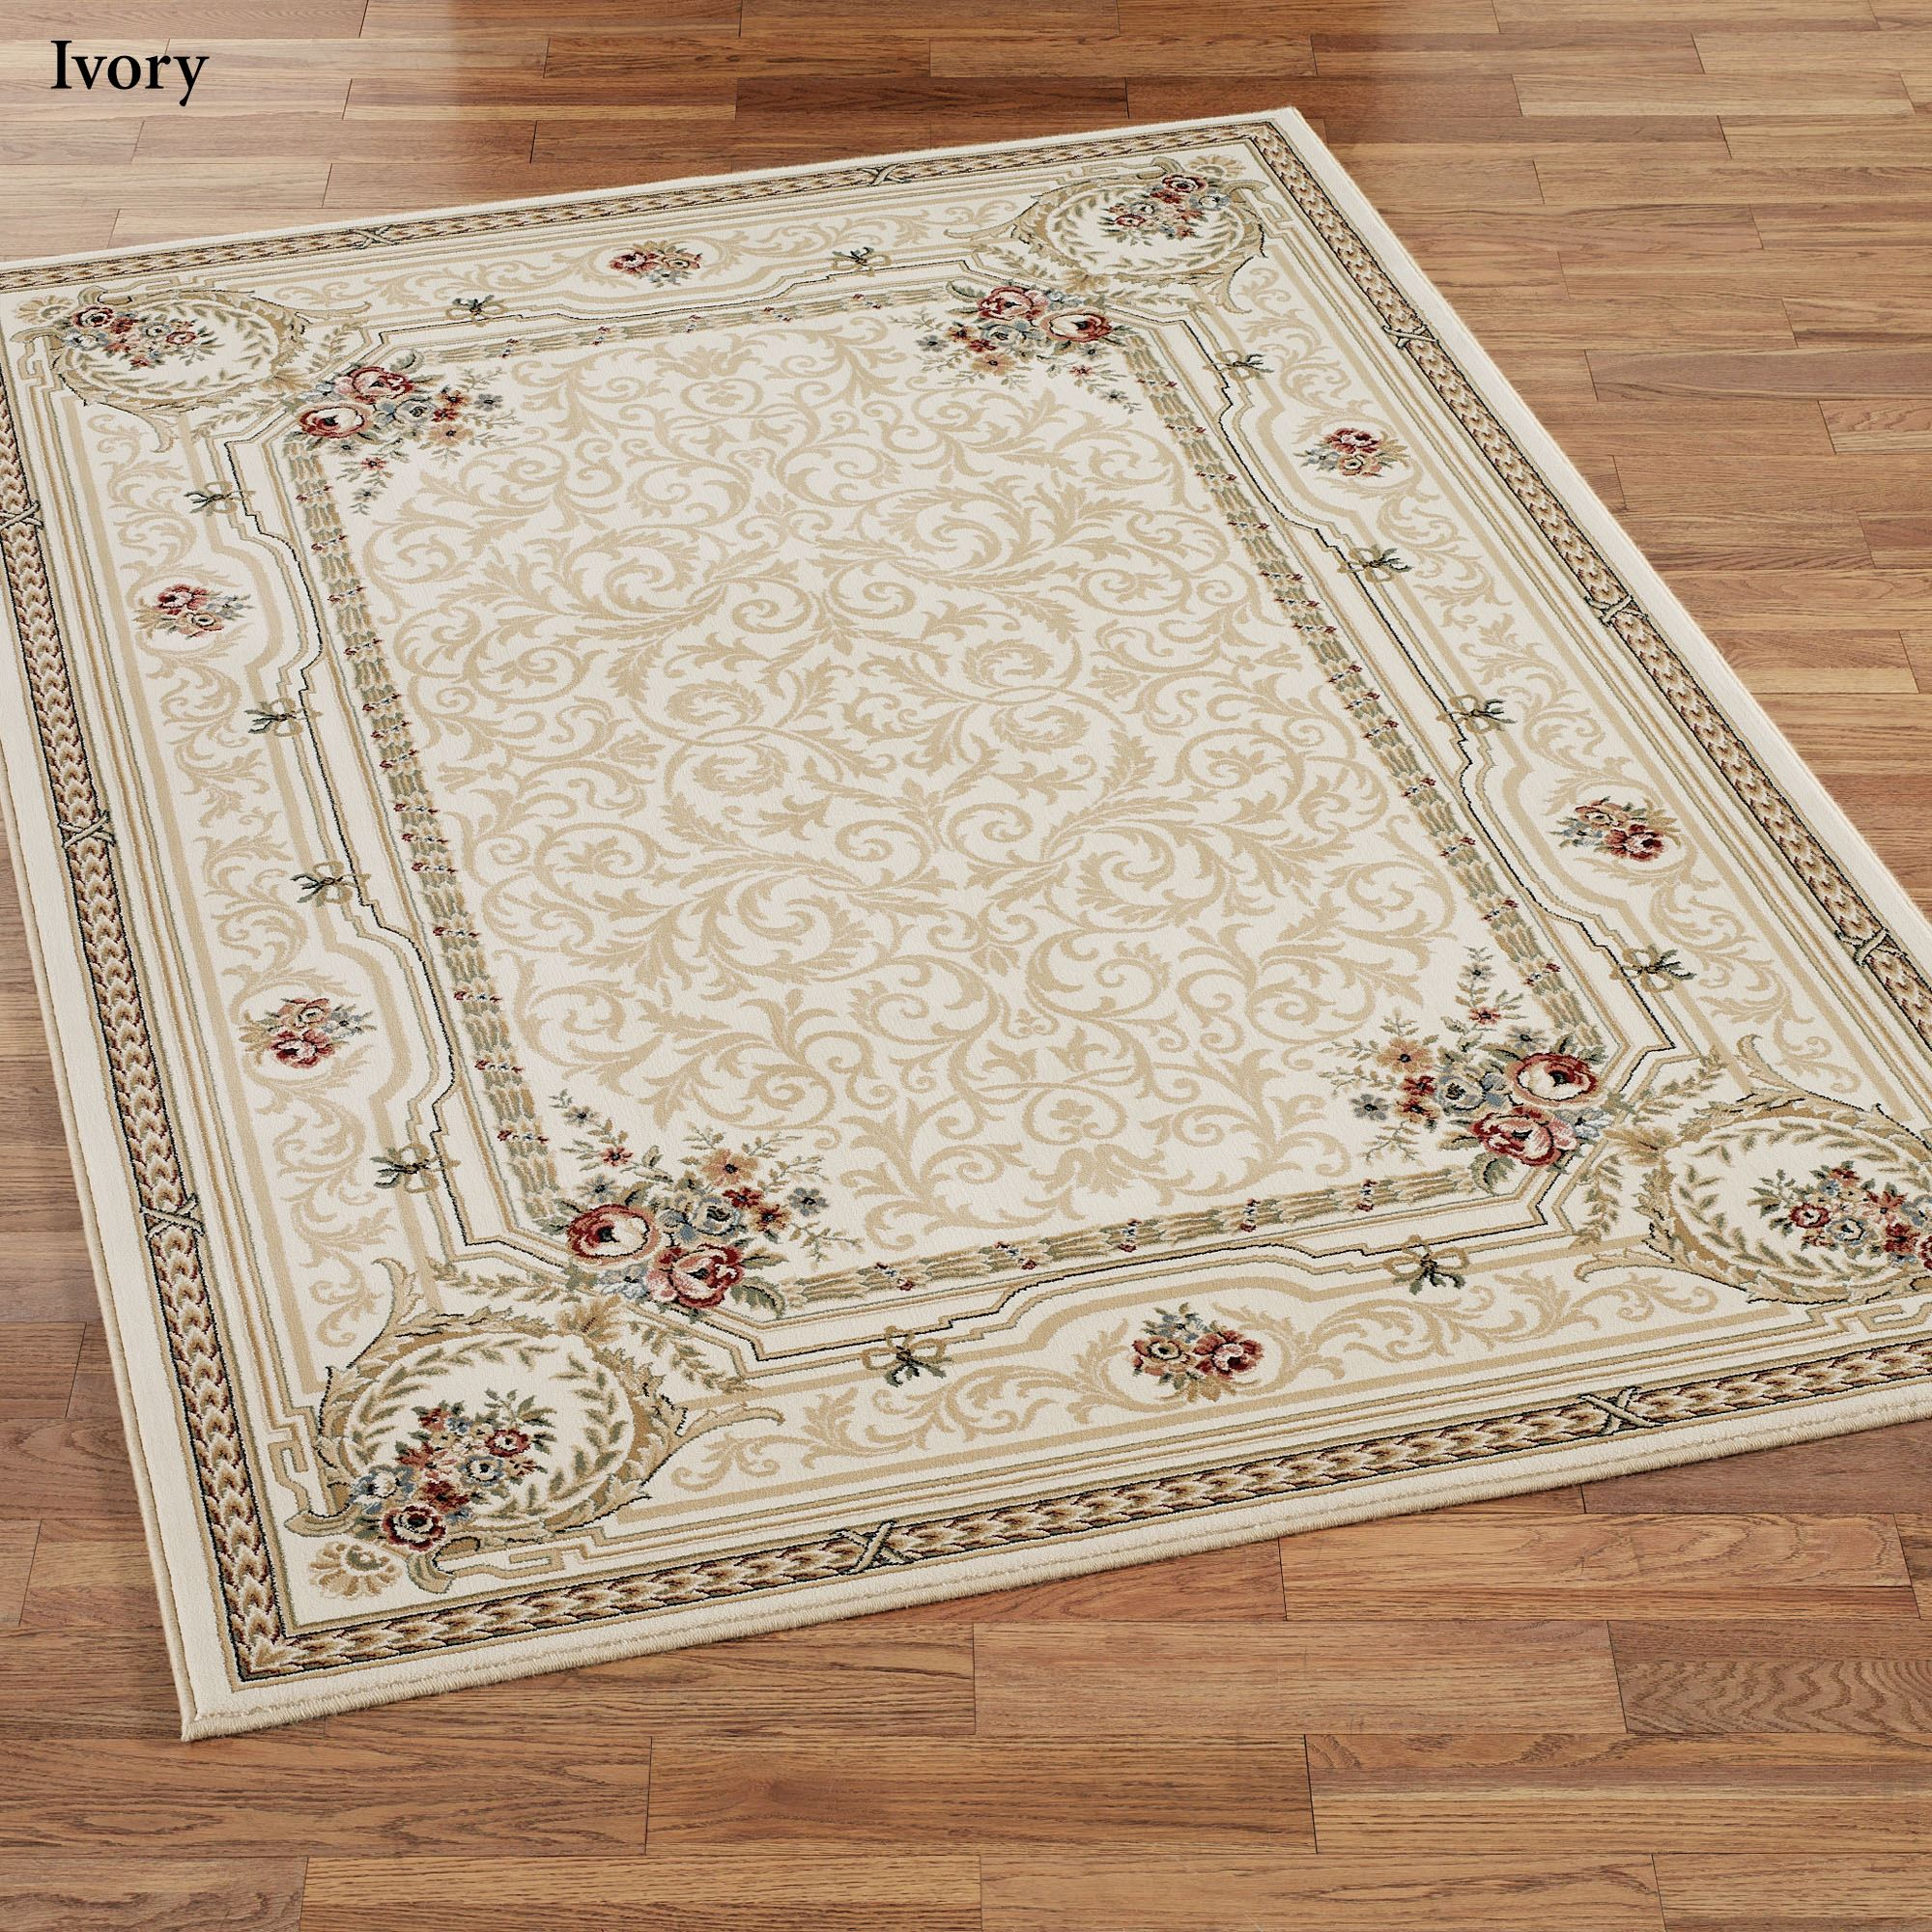 Imogene Garden Acanthus Leaf Scroll Area Rugs